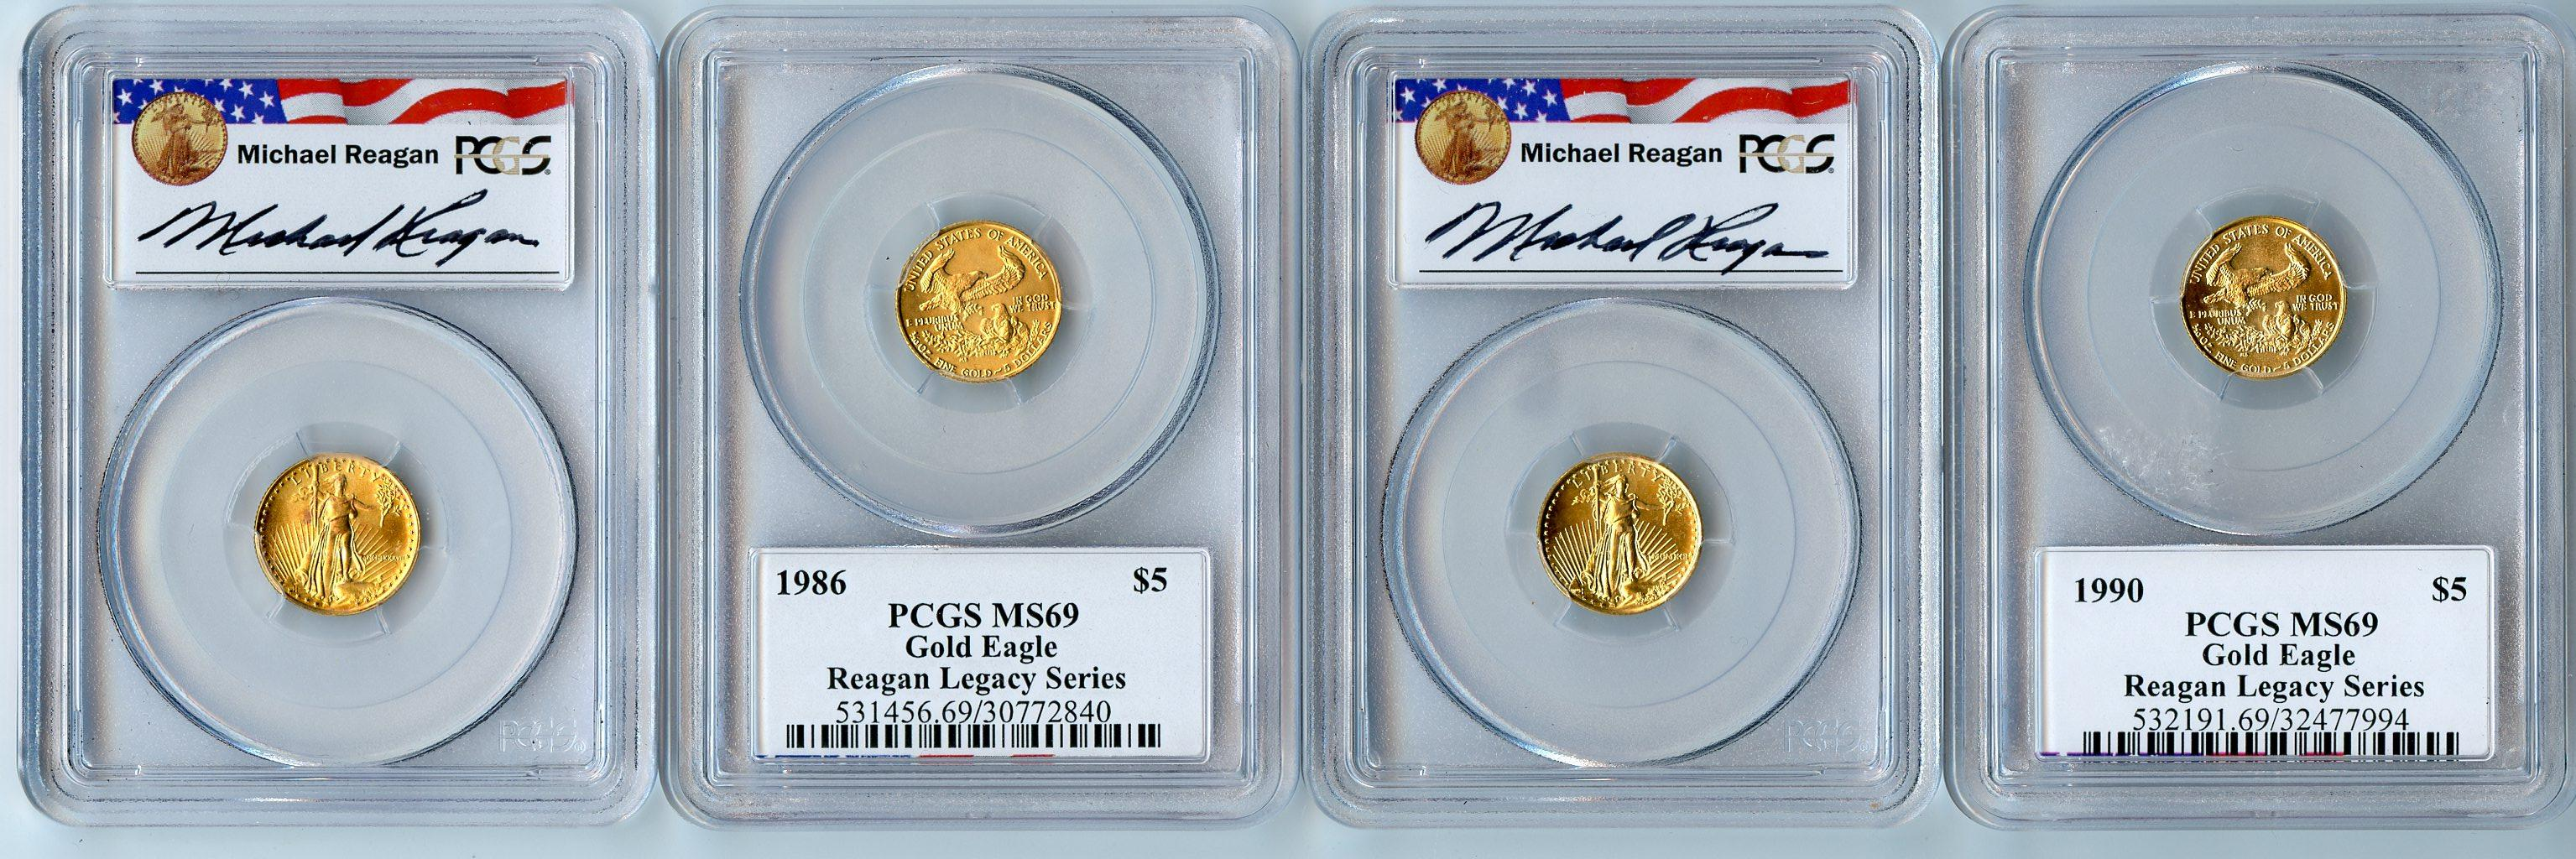 Gold $5 American Eagle 1/10th Ounce in PCGS MS 69 Michael Reagan Signature Holders Mixed Dates